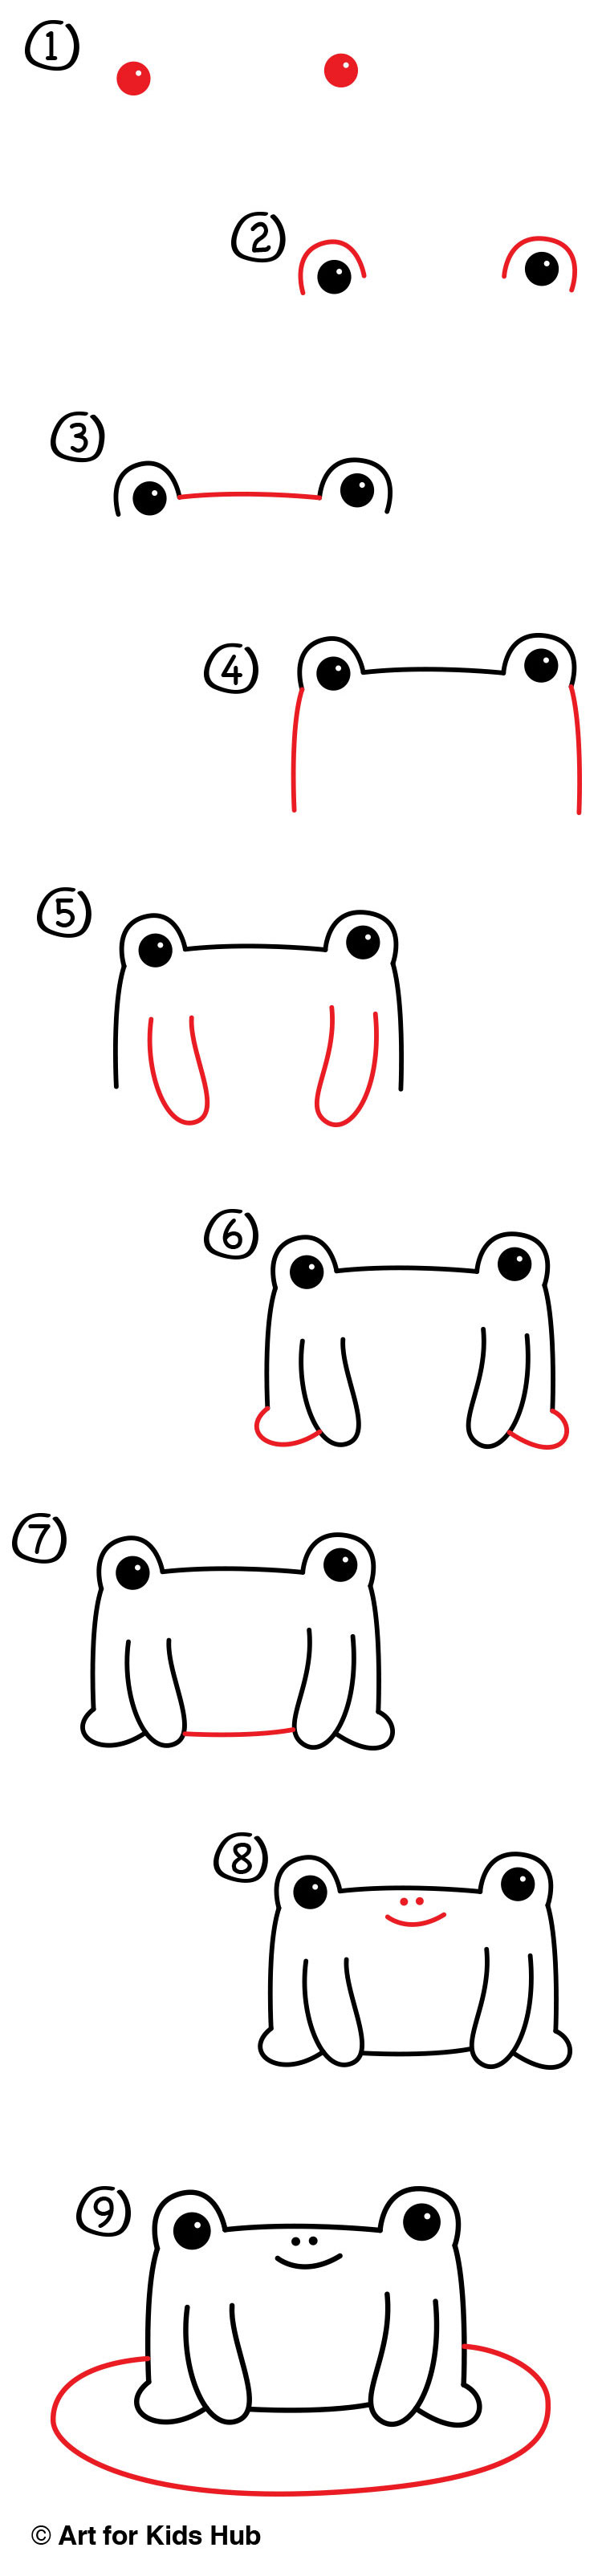 How To Draw A Cartoon Frog - Art for Kids Hub